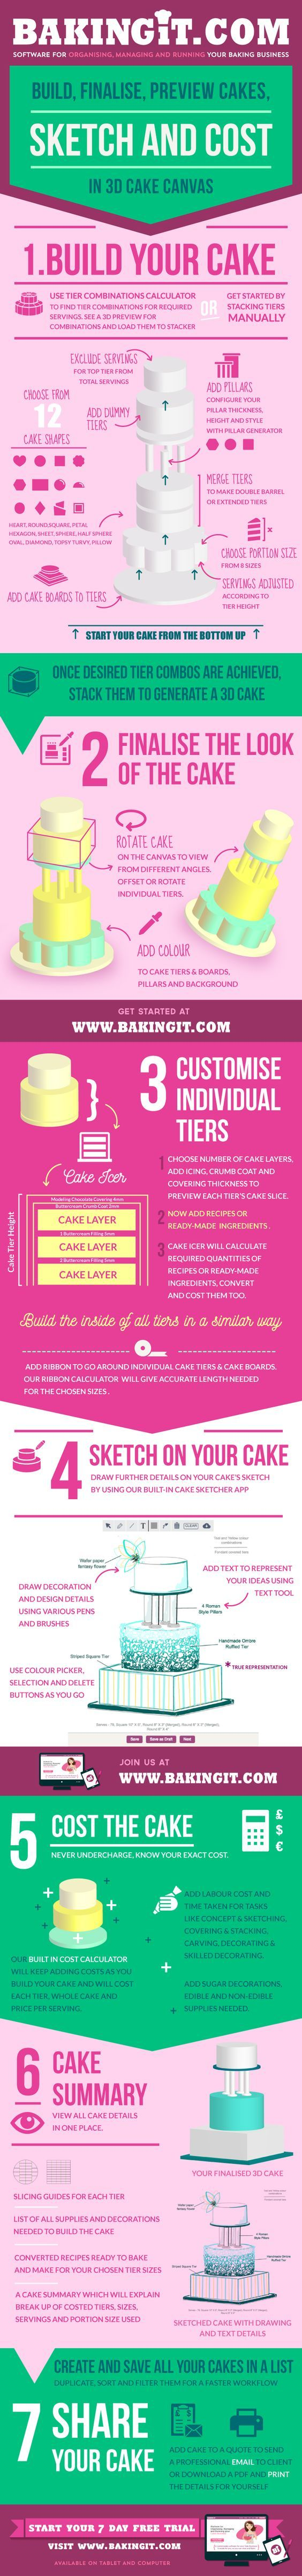 Calculate, Design, Sketch and Cost your Cakes from one place! Start your 7 Day FREE trial now at www.bakingit.com